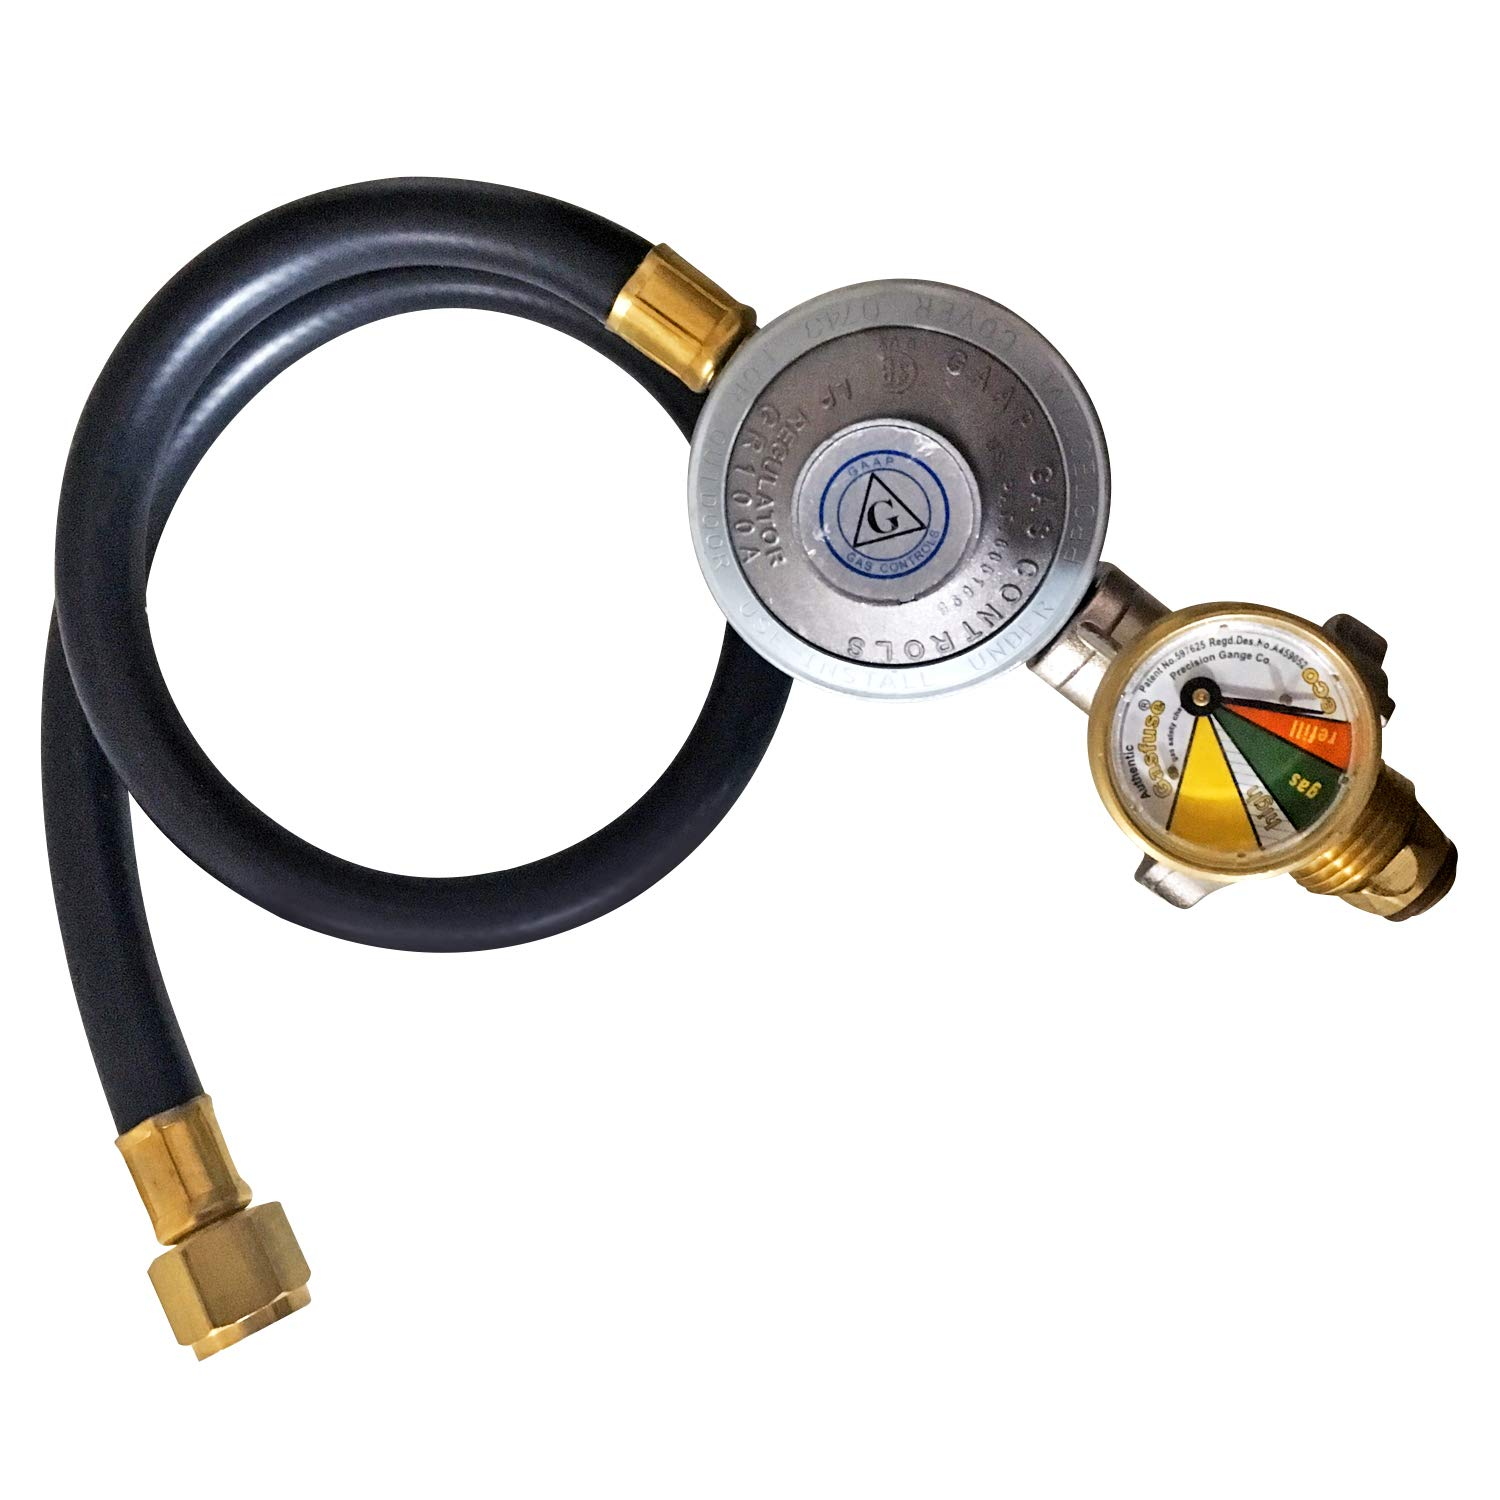 Gas Bottle Regulator, Auto Safety Leak Shut Off 600mm hose Gas-Fuse